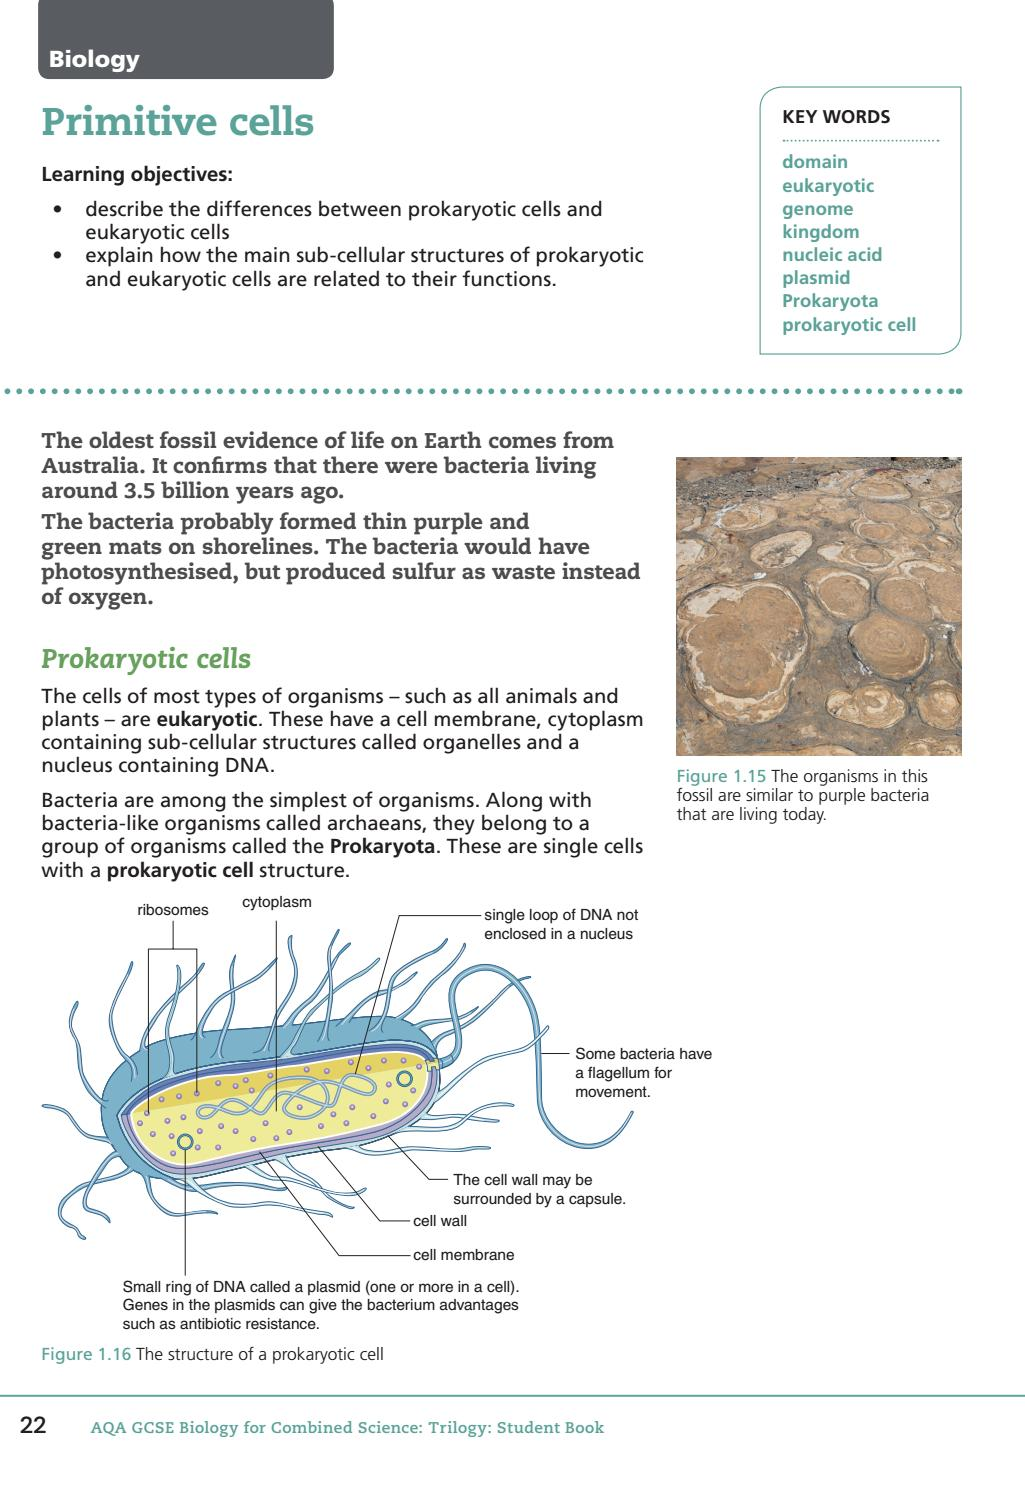 Aqa Gcse Biology For Combined Science Student Book Sample Chapter By Prokaryotic Cells Collins Issuu